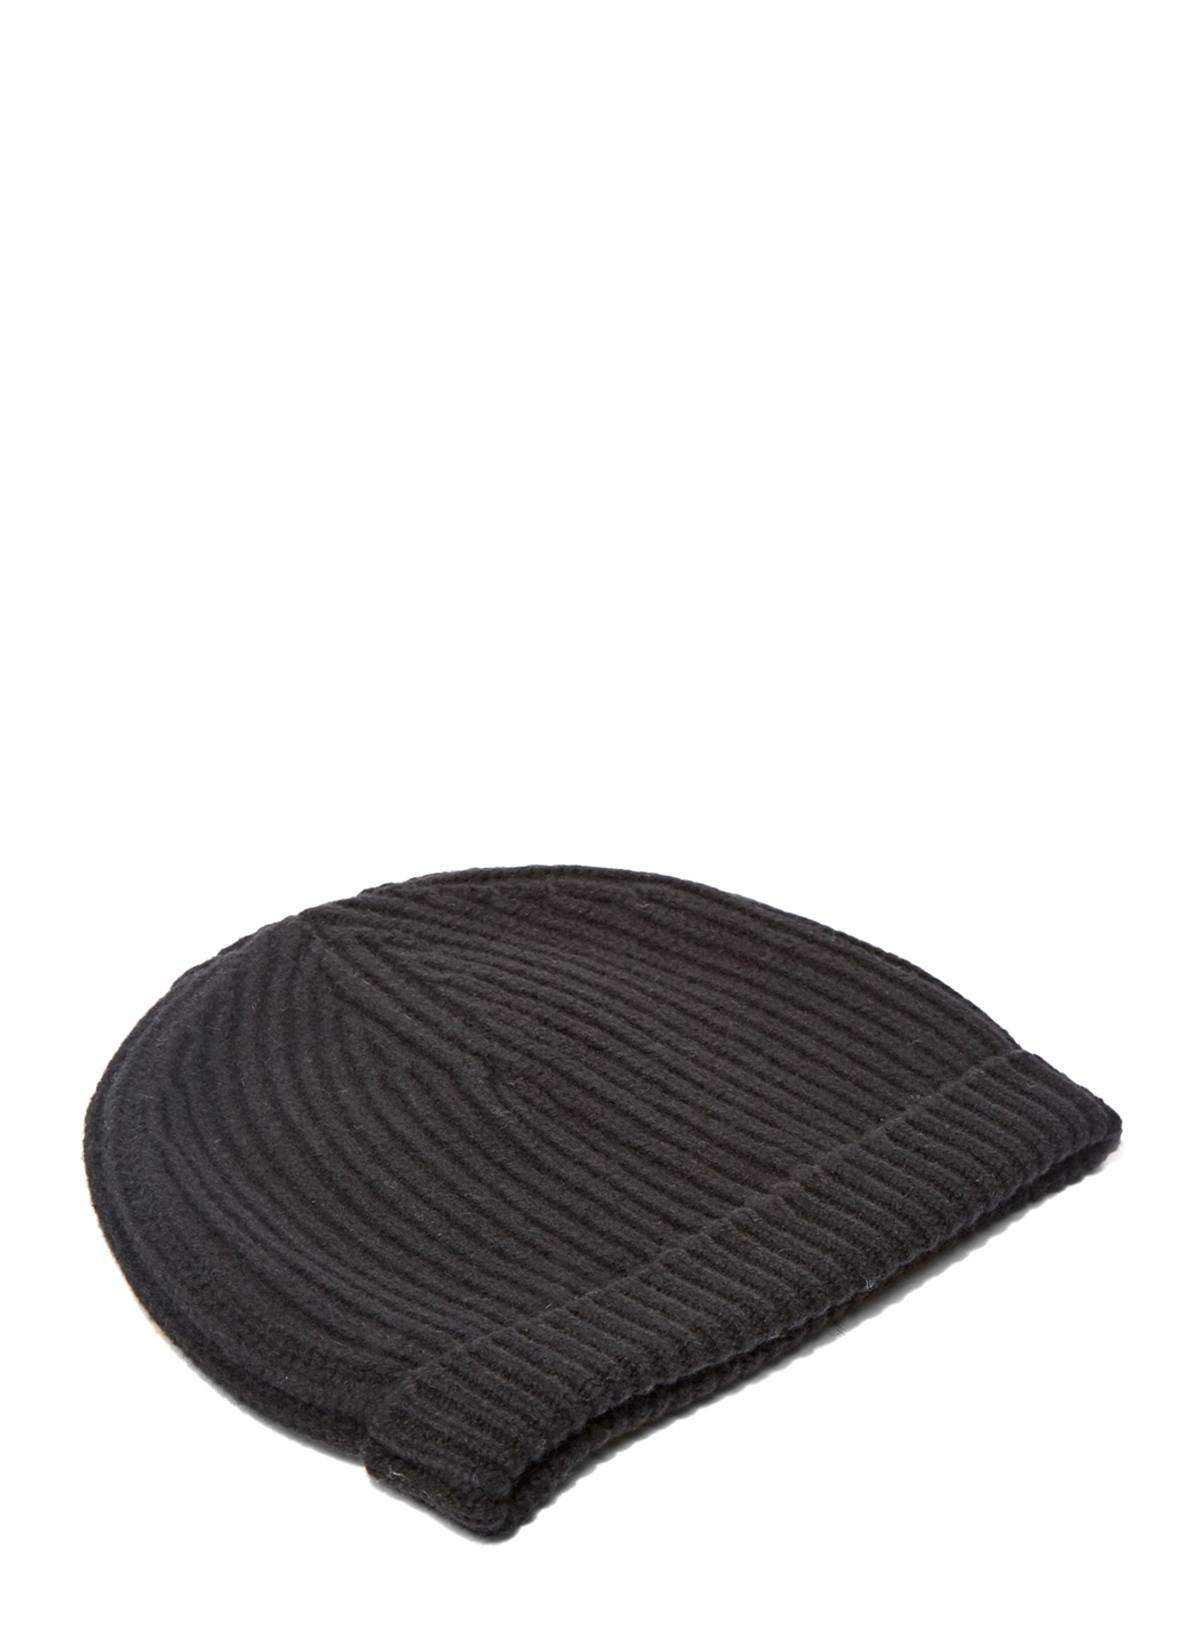 633beeb3bbc Acne Studios Canning L Rib Knit Beanie Size one size - Hats for Sale ...